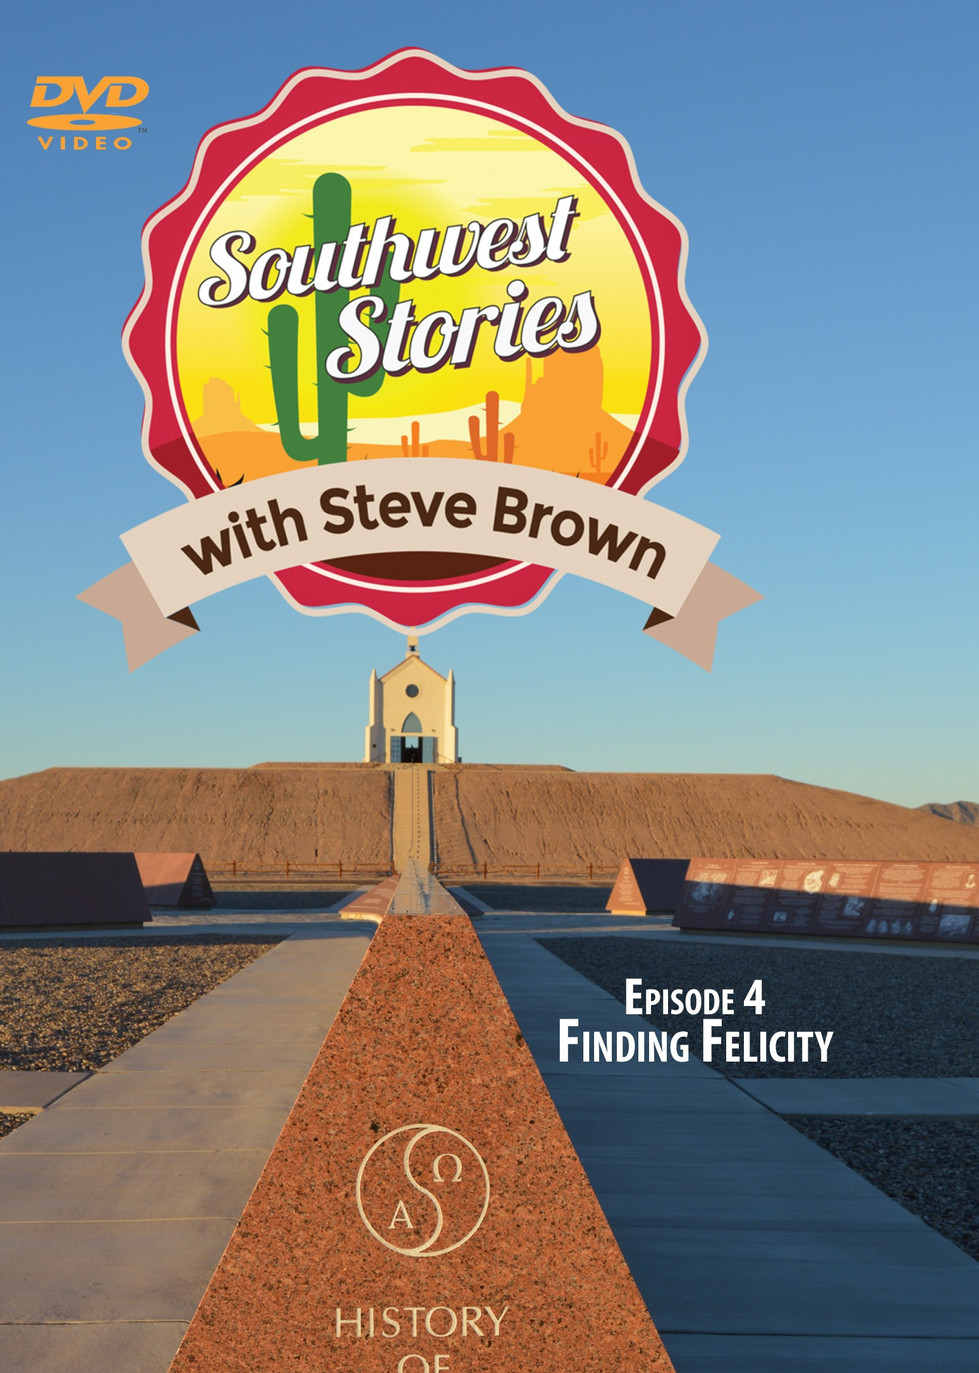 Southwest Stories: Finding Felicity (and Yuma)